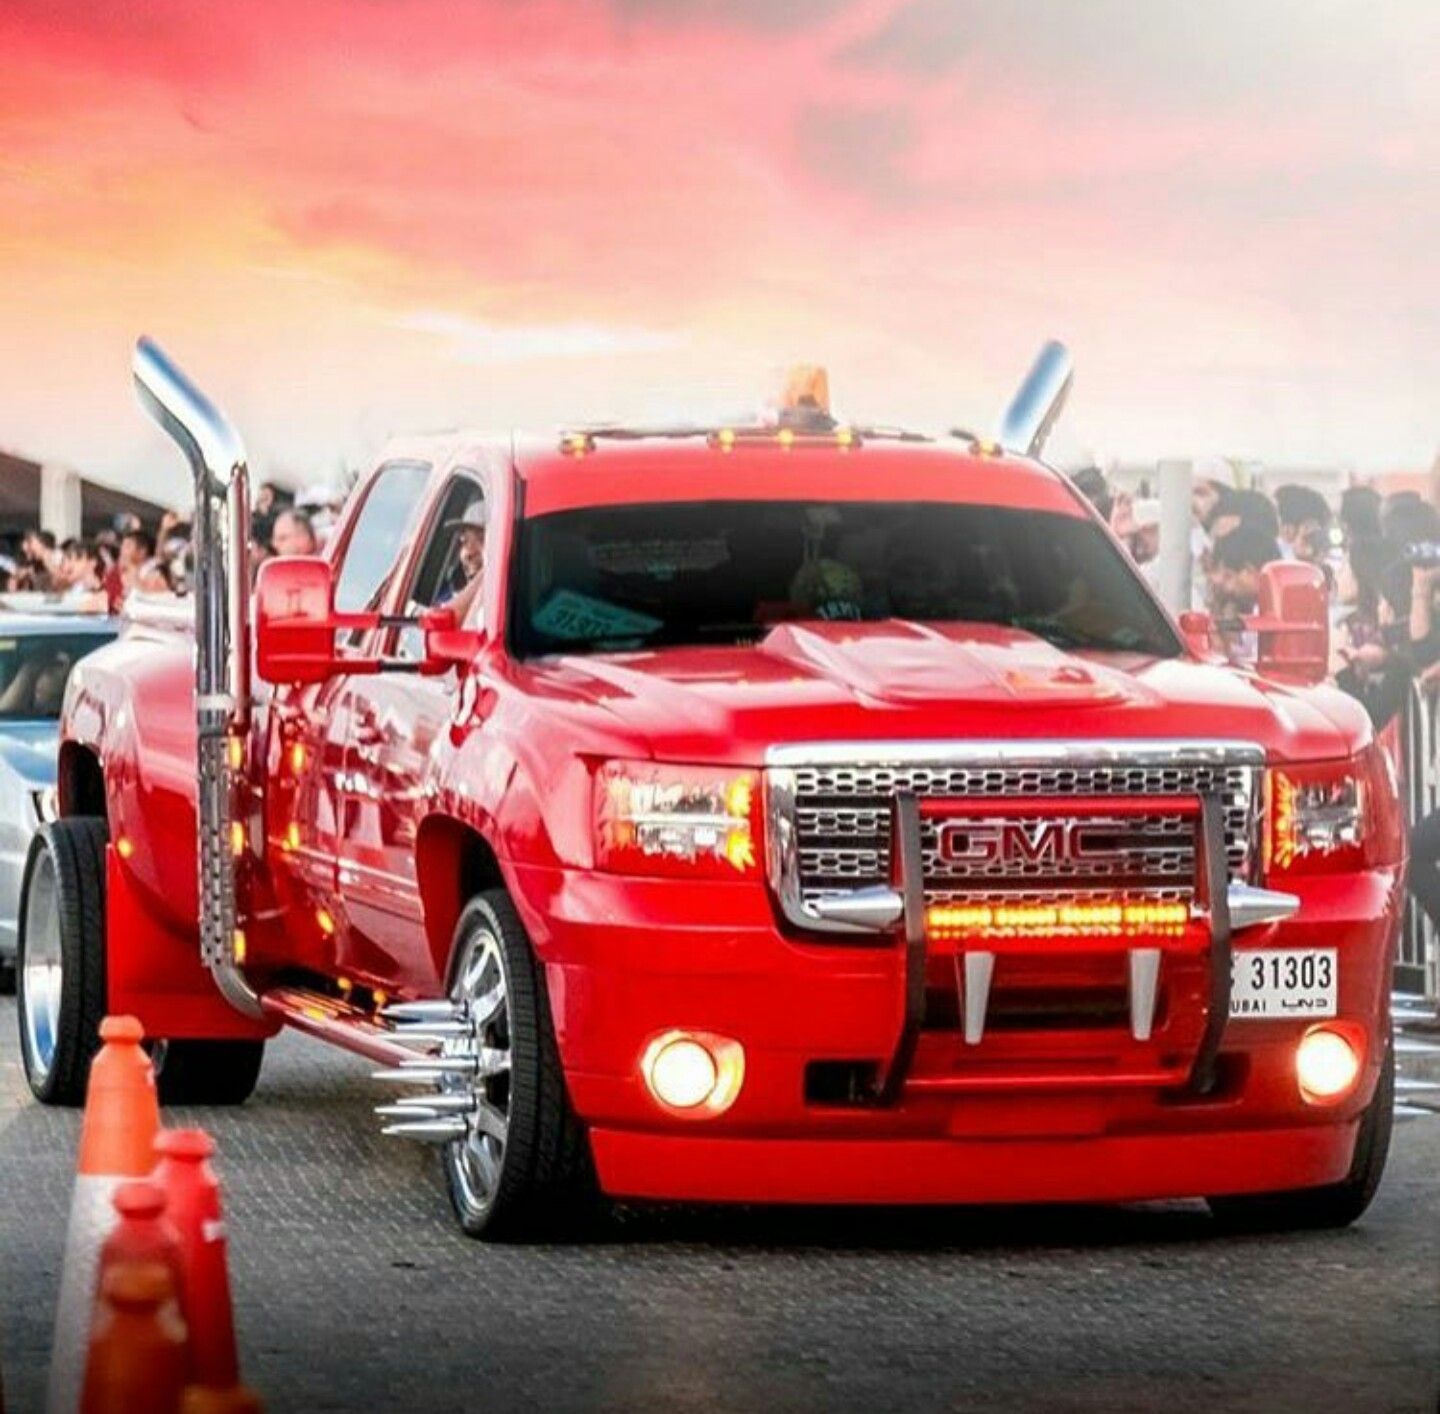 Lifted chevy show trucks 2103 texas heatwave truck show - This Is Almost My Dream Truck Dually Truckslifted